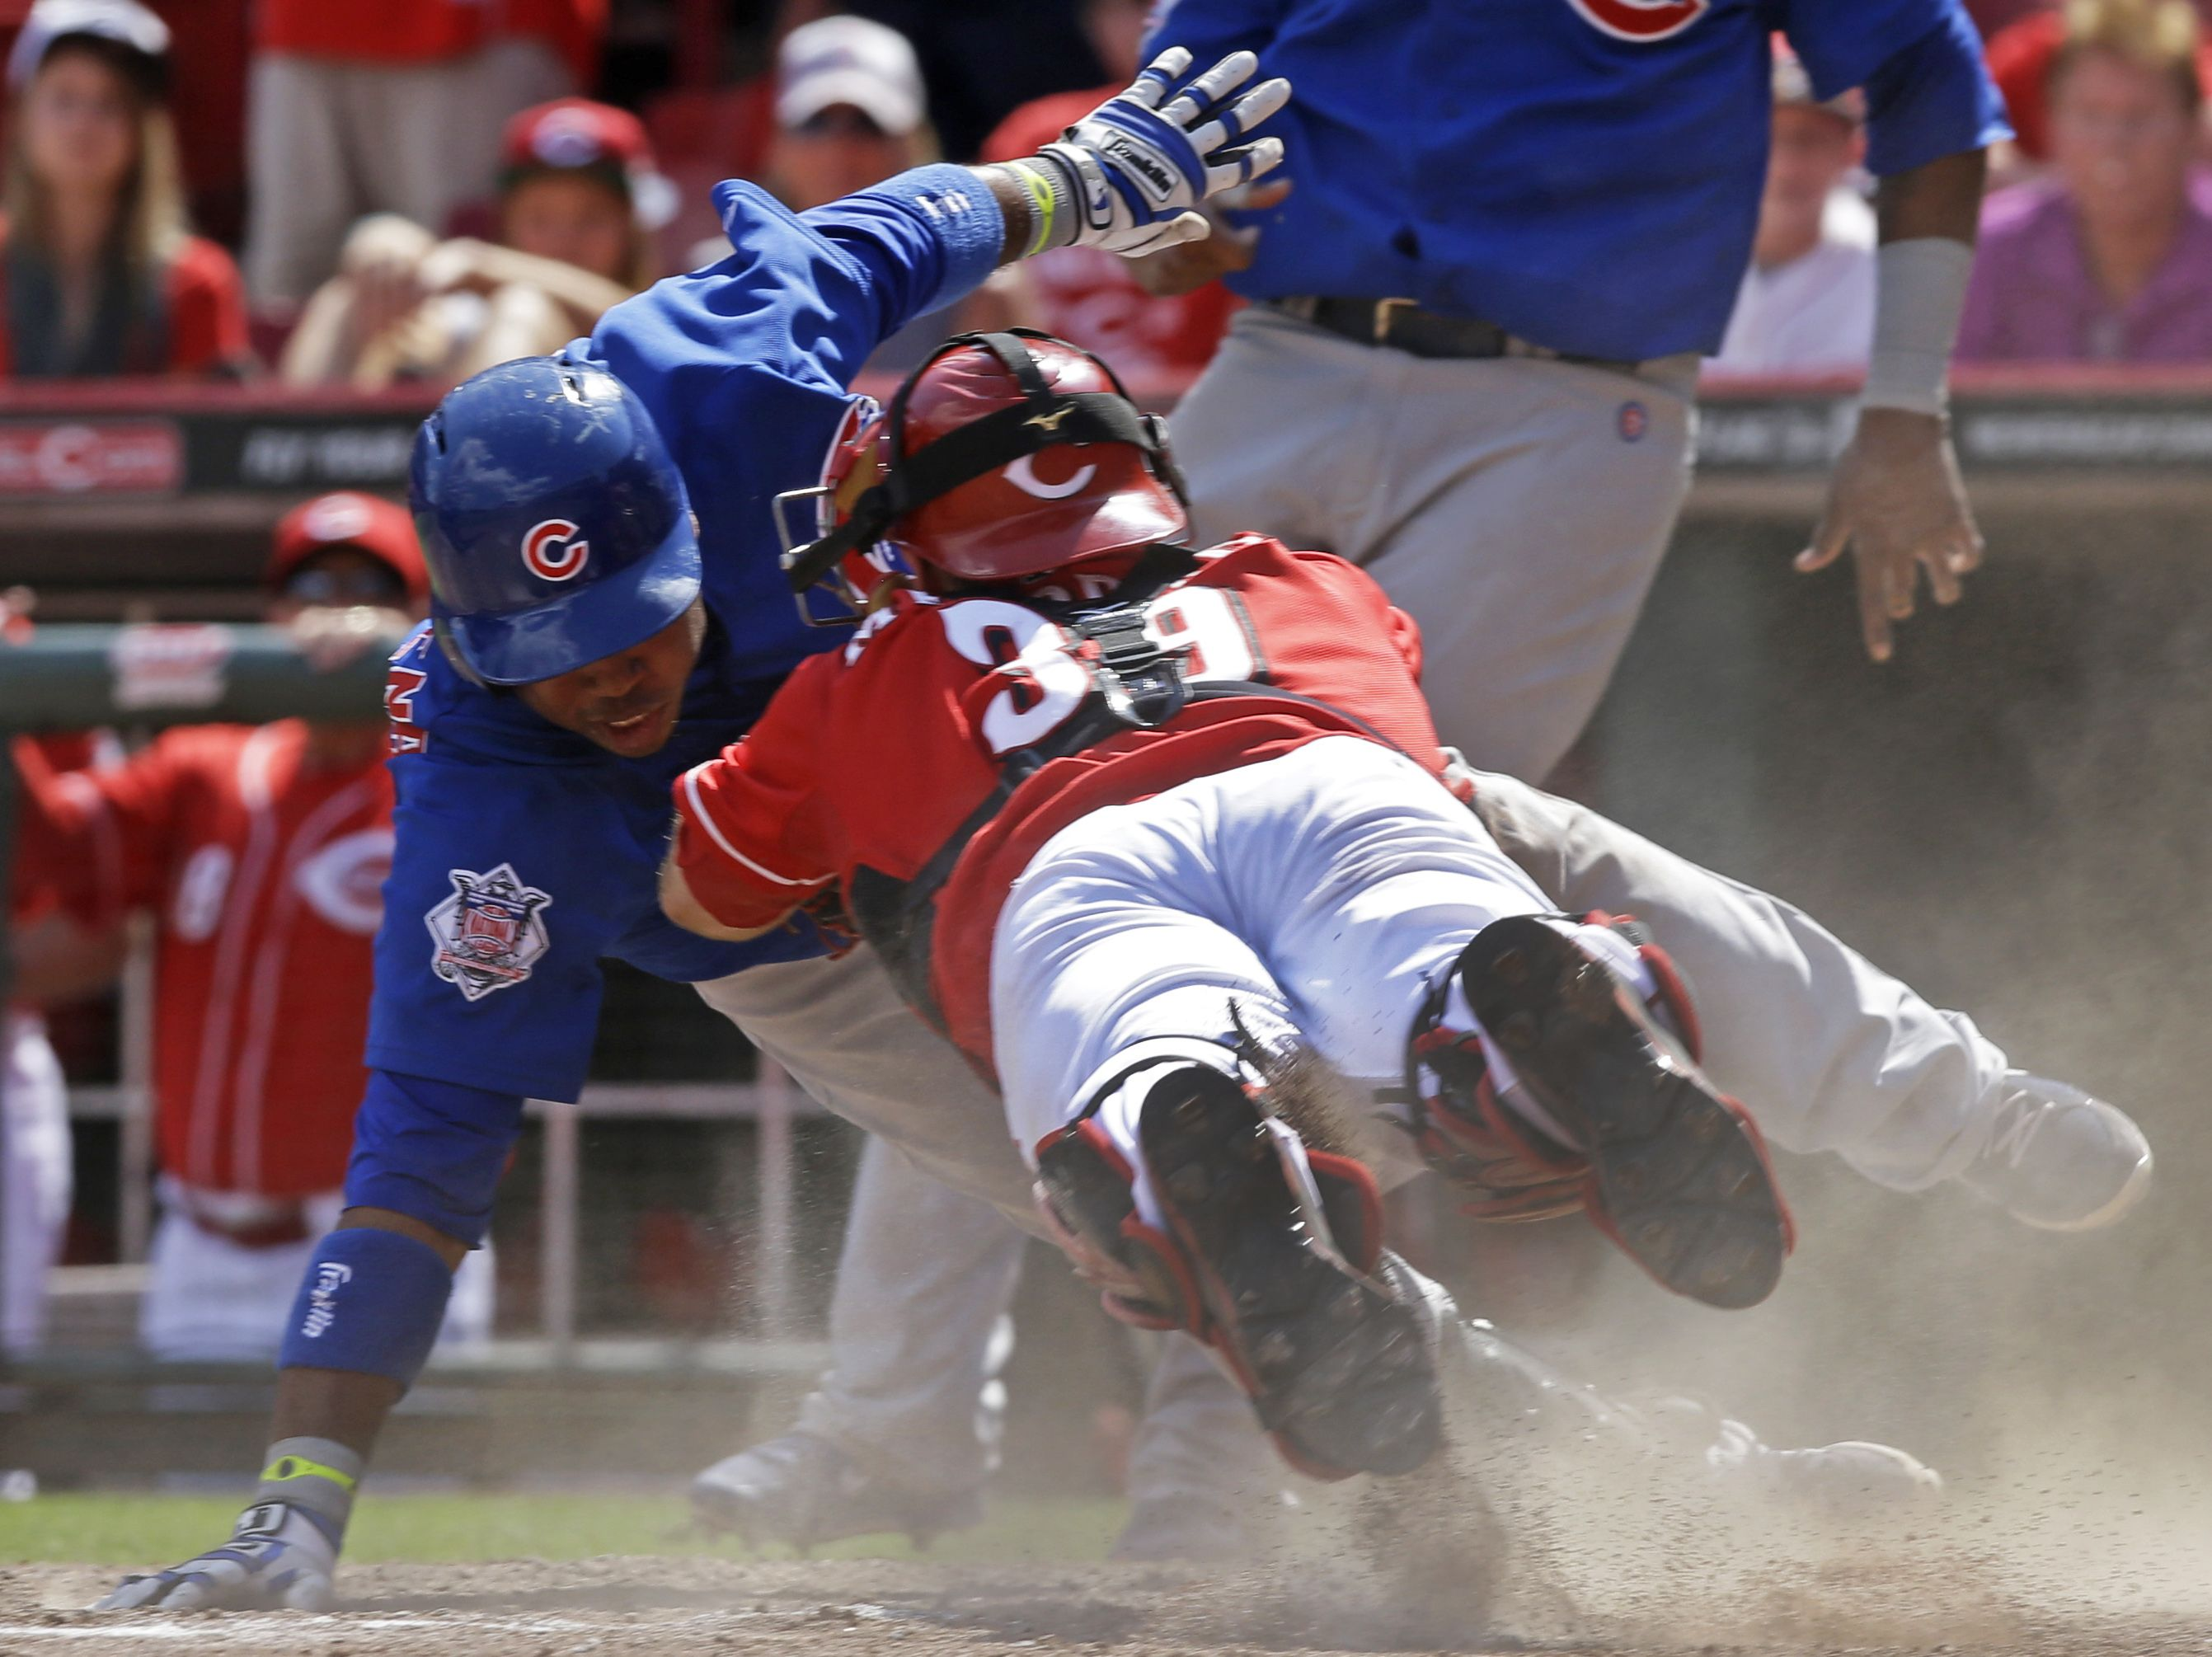 Reds Catcher Devin Mesoraco Dives To Tag Out Cubs Luis Valbuena At Home Plate In The 12th Inning Of A Game American League Sports Baseball Baseball Players